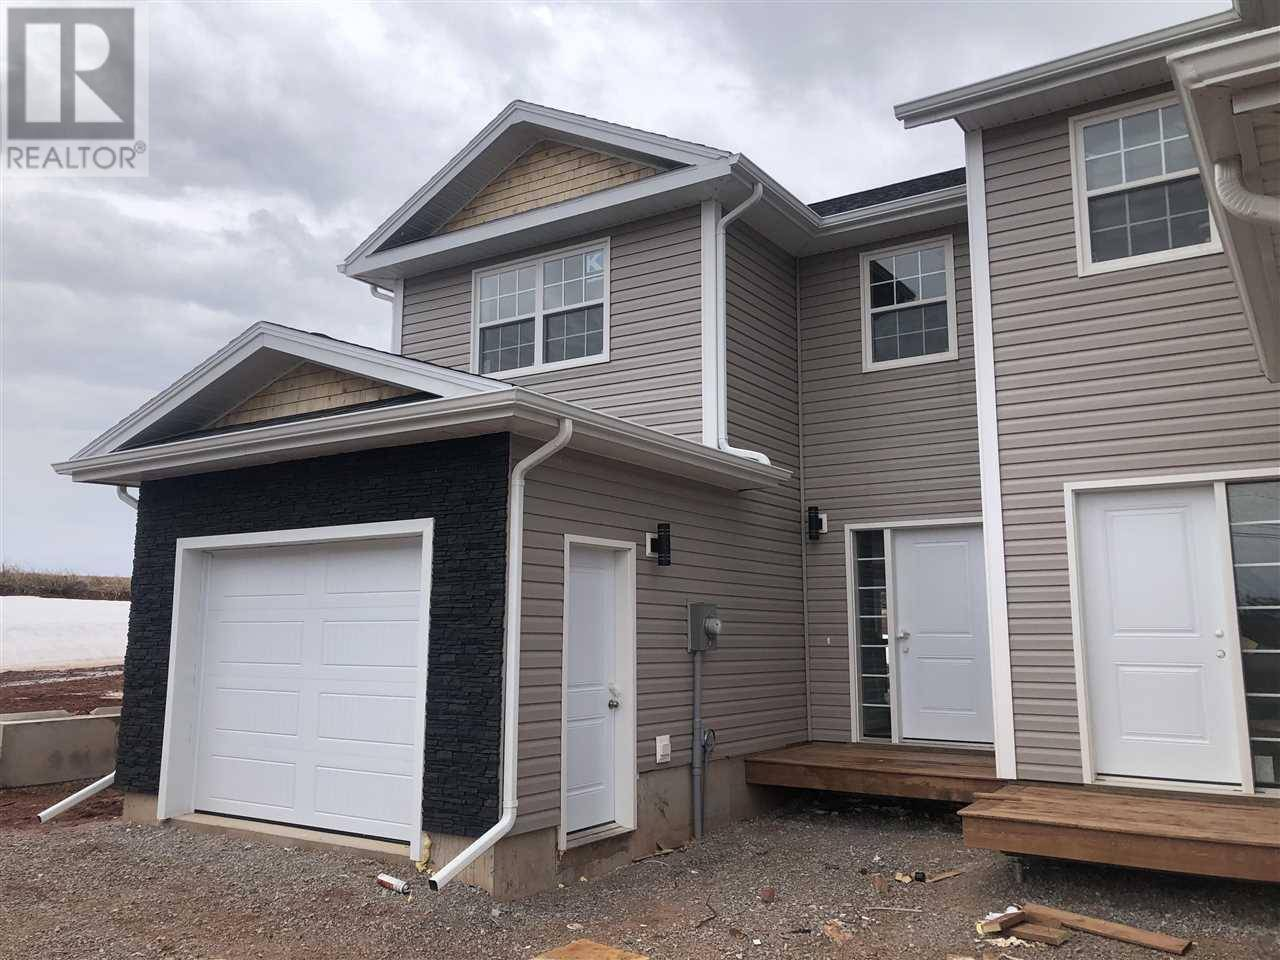 Townhouse for sale at 74 Macwilliams Rd Unit B East Royalty Prince Edward Island - MLS: 201916461